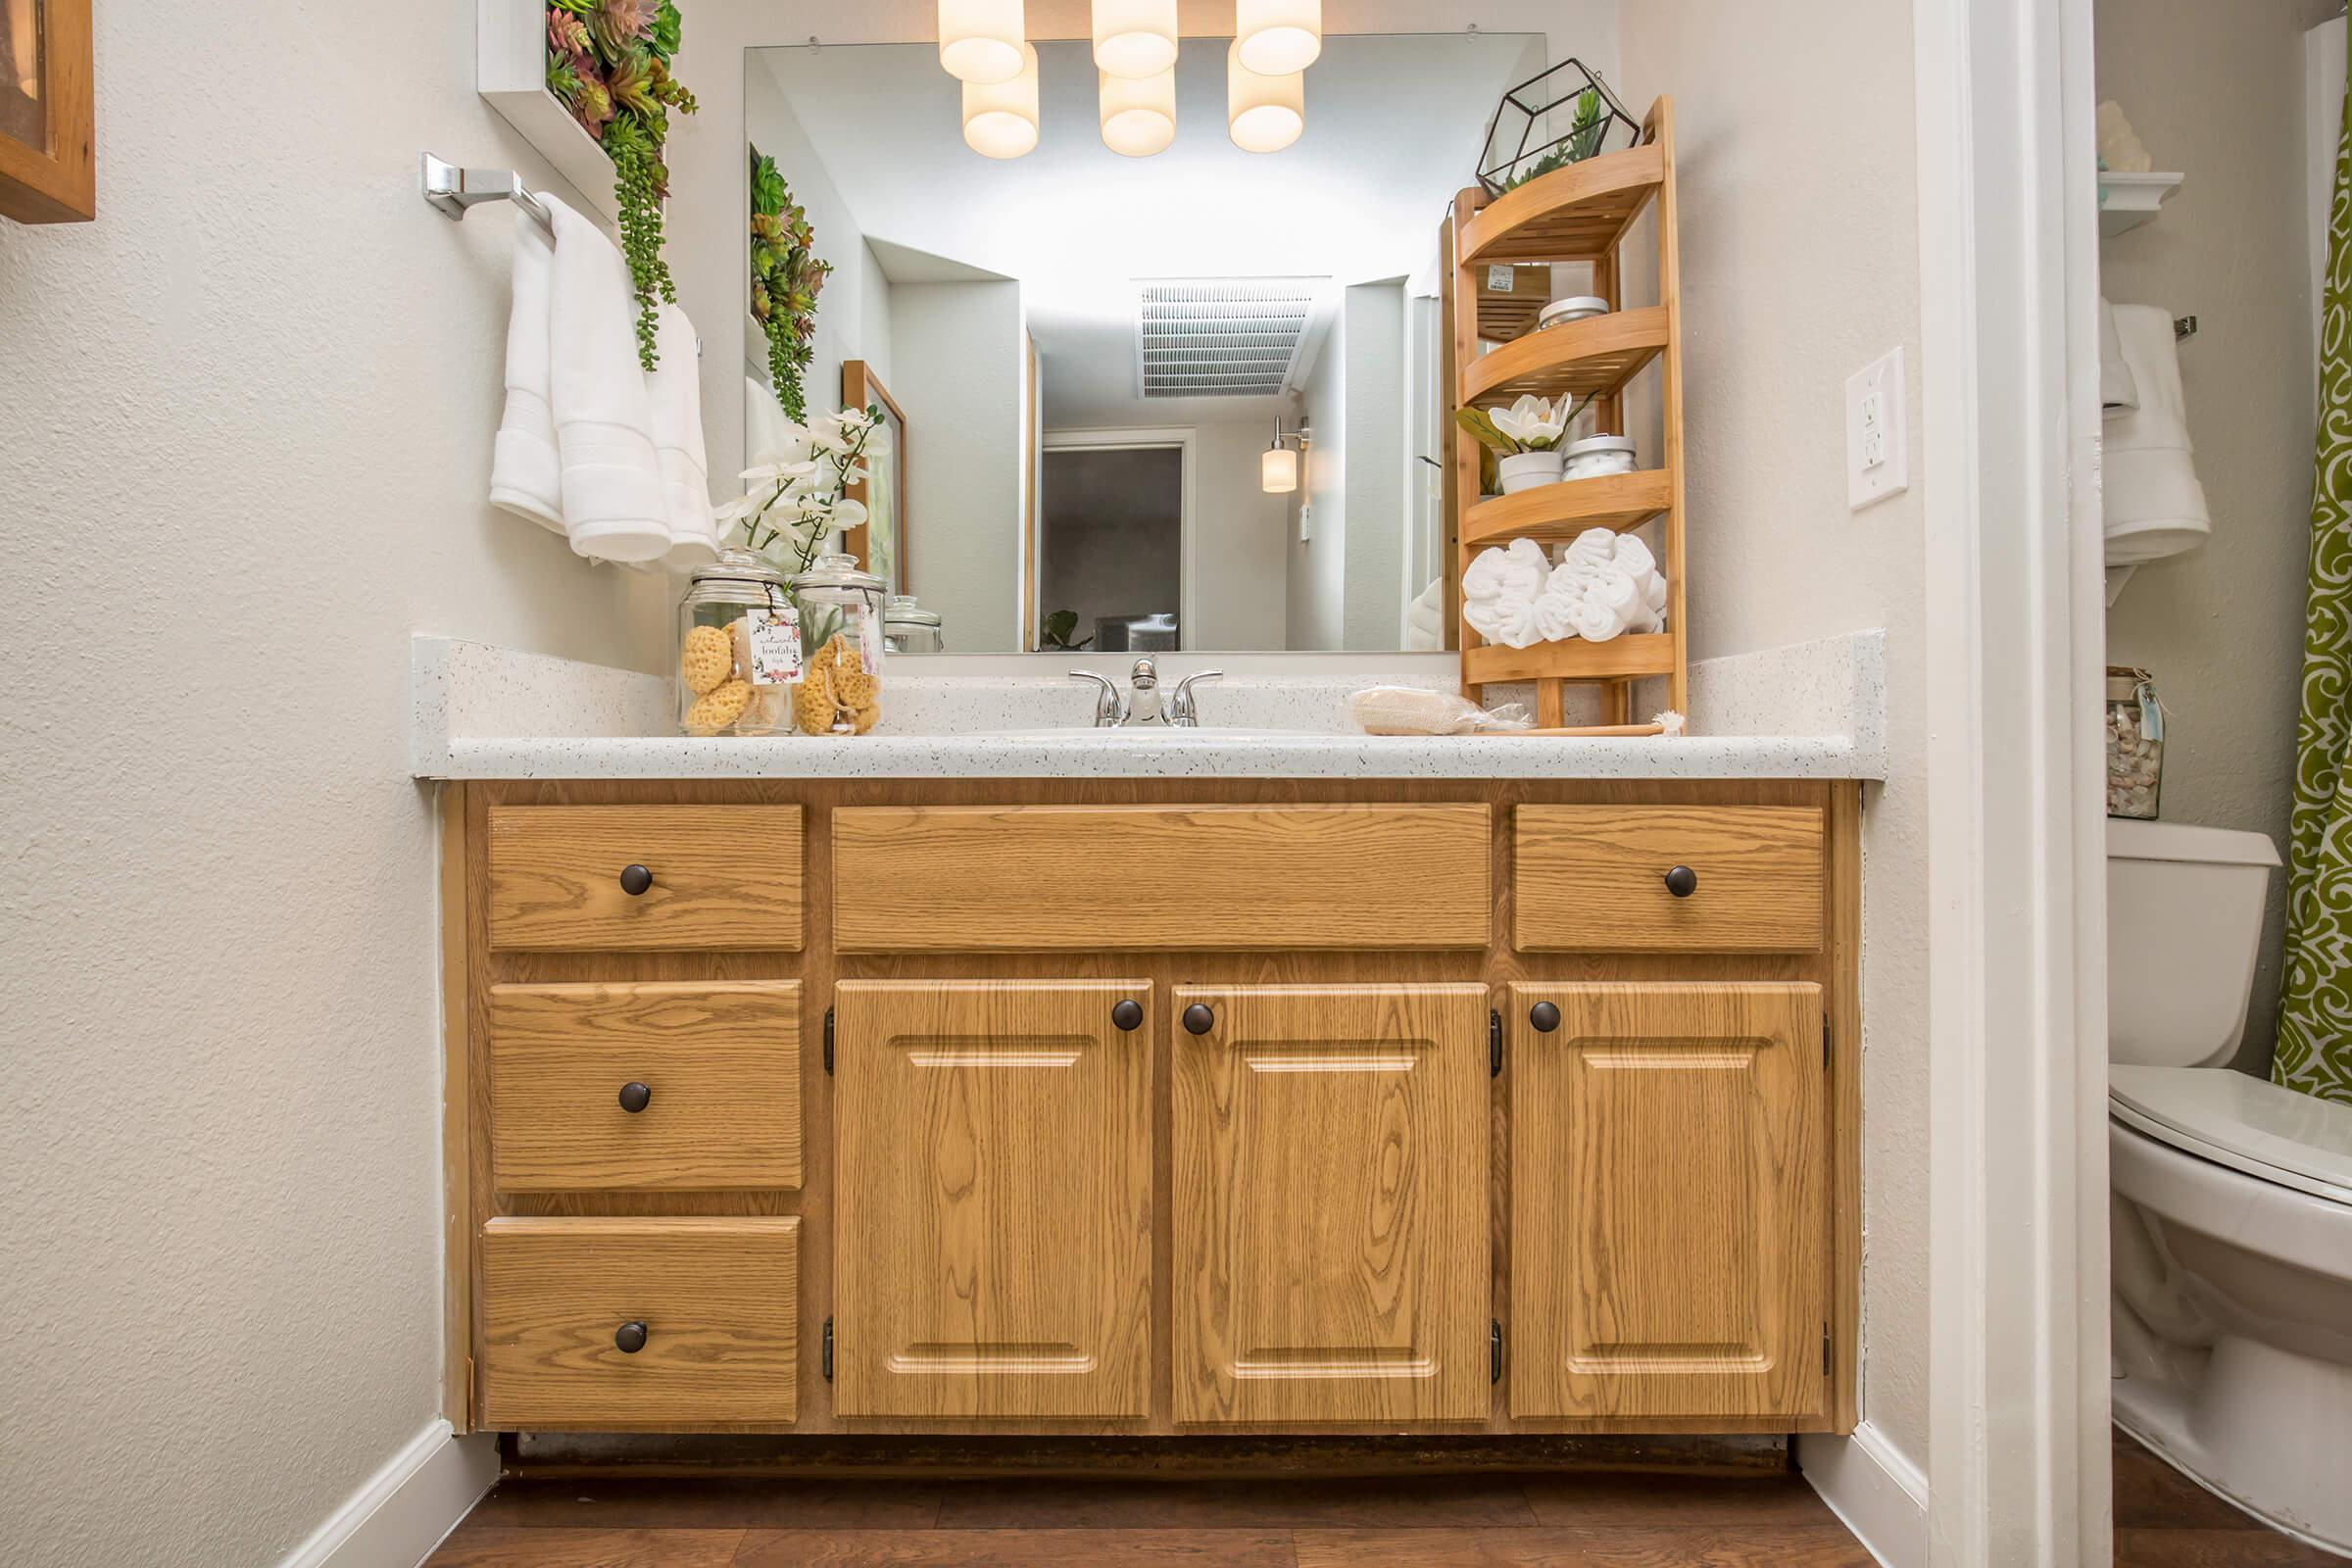 a kitchen with wooden cabinets and a mirror